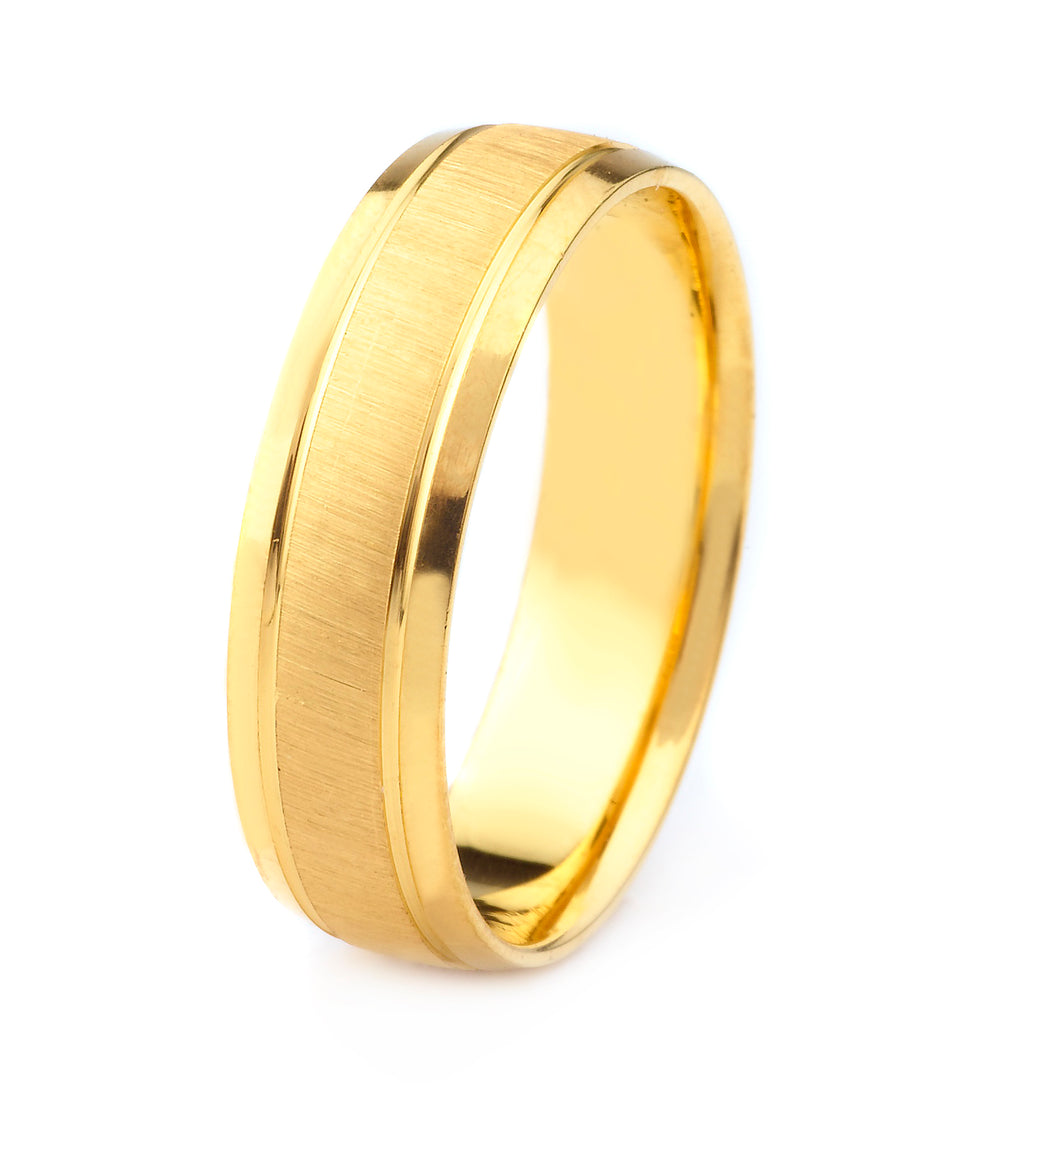 14K GOLD MENS WEDDING BAND WITH CROSS SATIN FINISH POLISHED BEVELED EDGES AND GROOVES